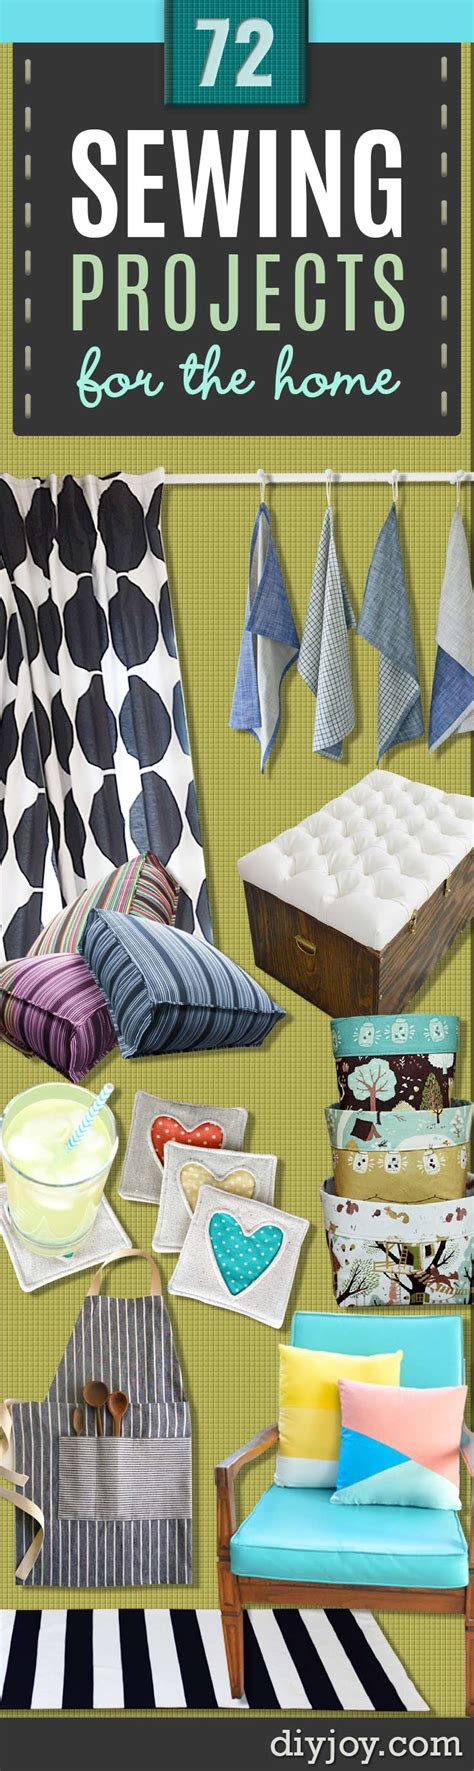 diy sewing projects home decor 72 crafty sewing projects for the home diy